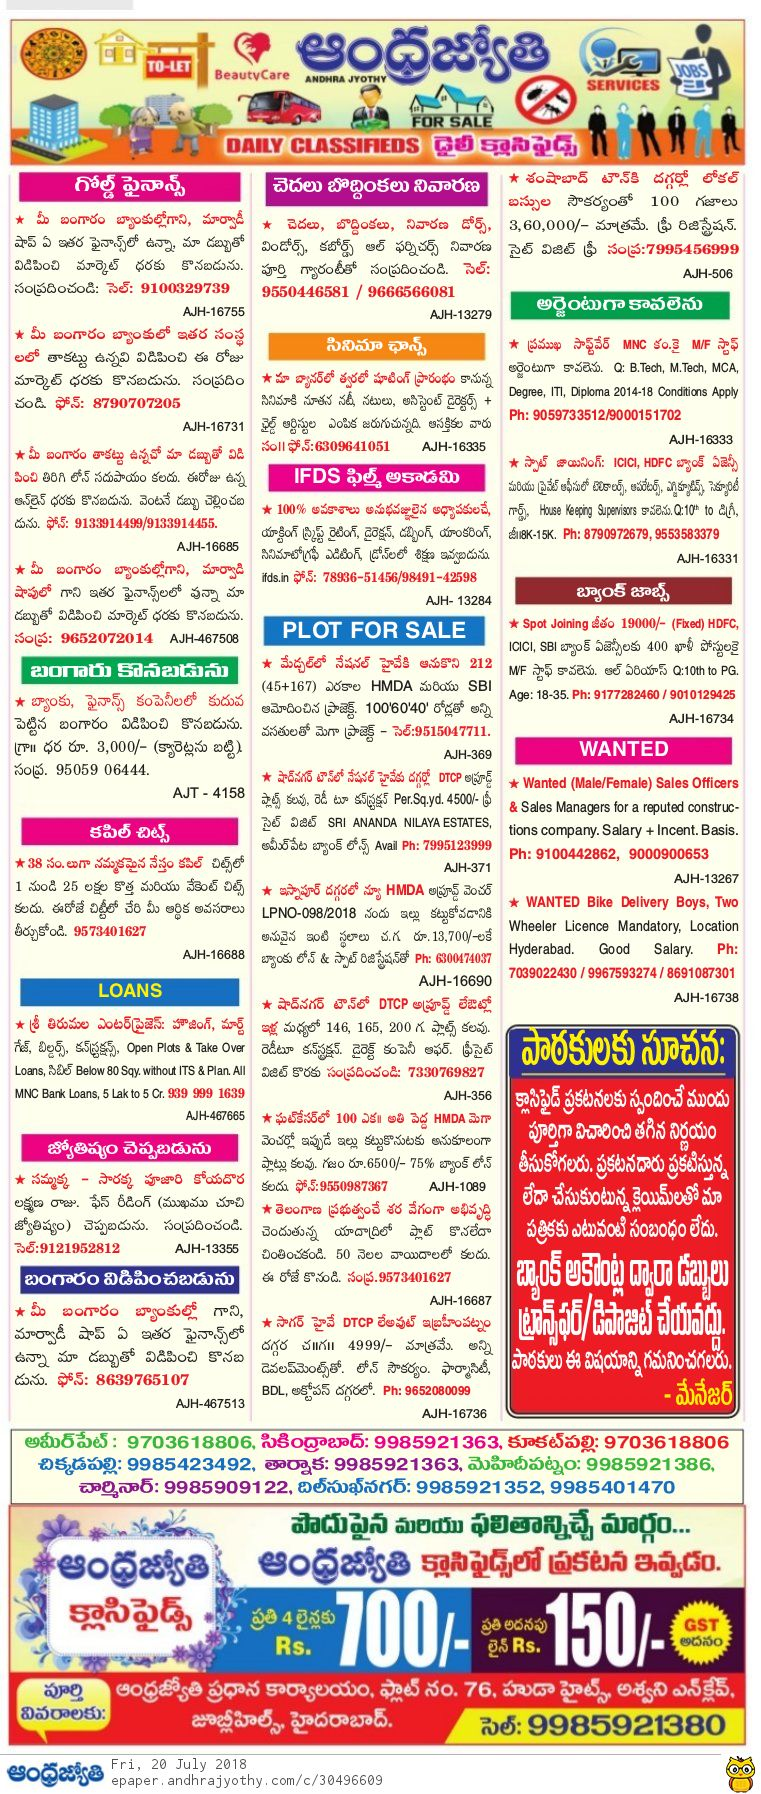 Andhra Jyothi Classified Ads Today [20-07-18] Hyderabad|Book4ad